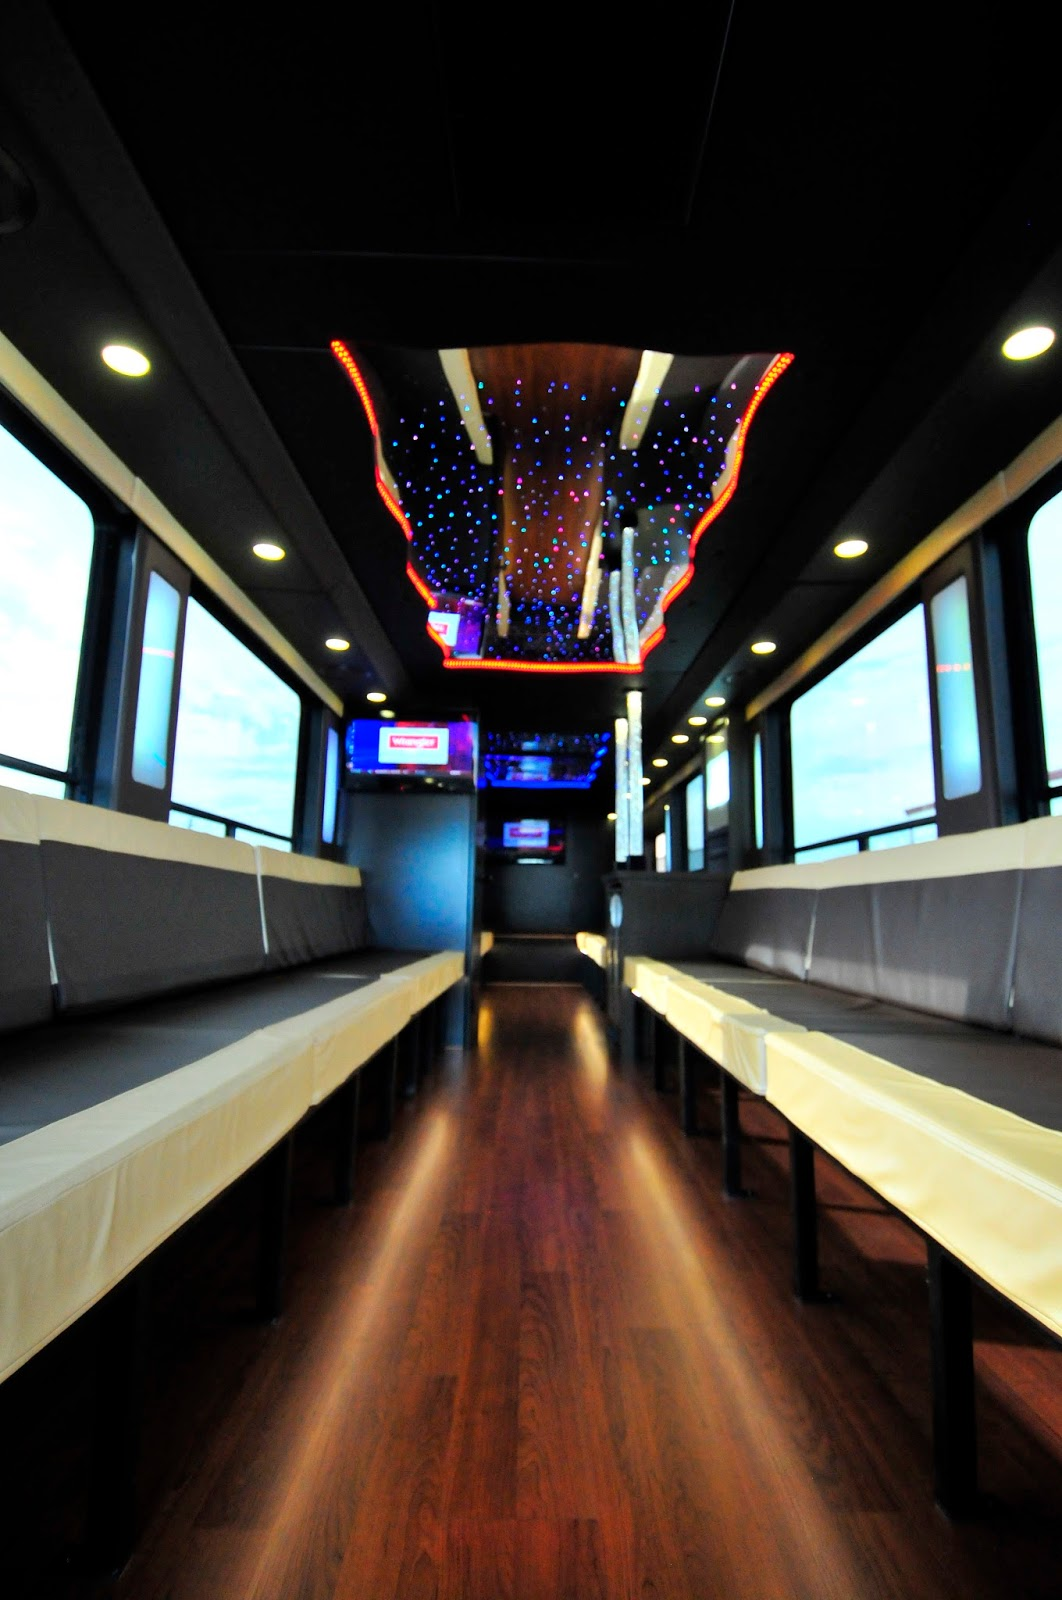 Http sherry c fanning blogspot com 2013 11 eugene party bus is ultimate tour bus html